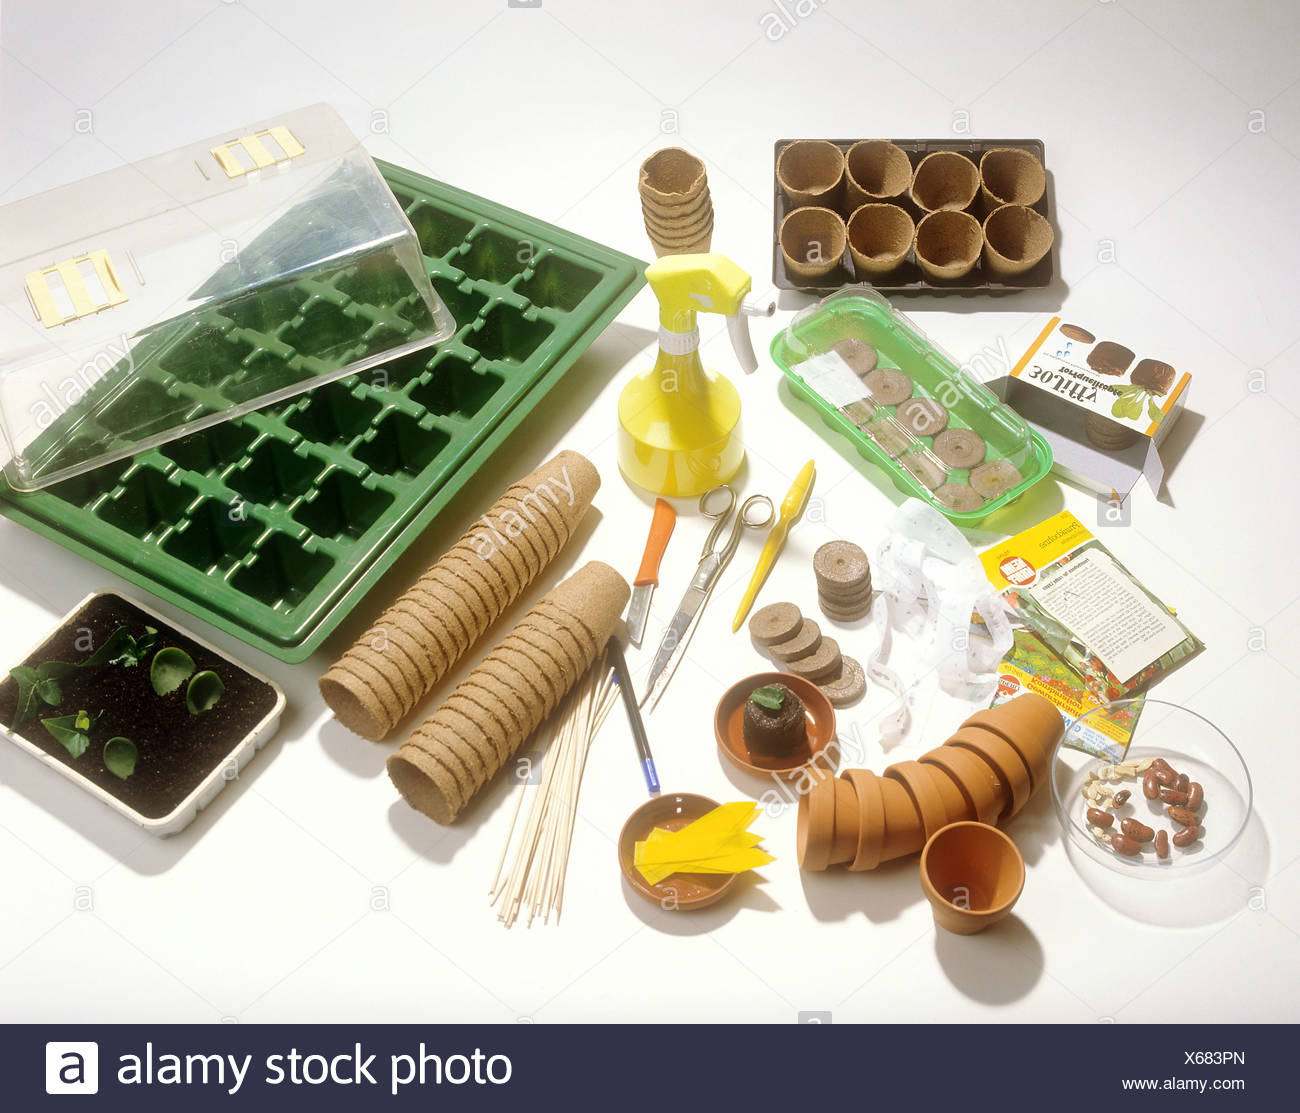 accessory for cultivating plants - Stock Image